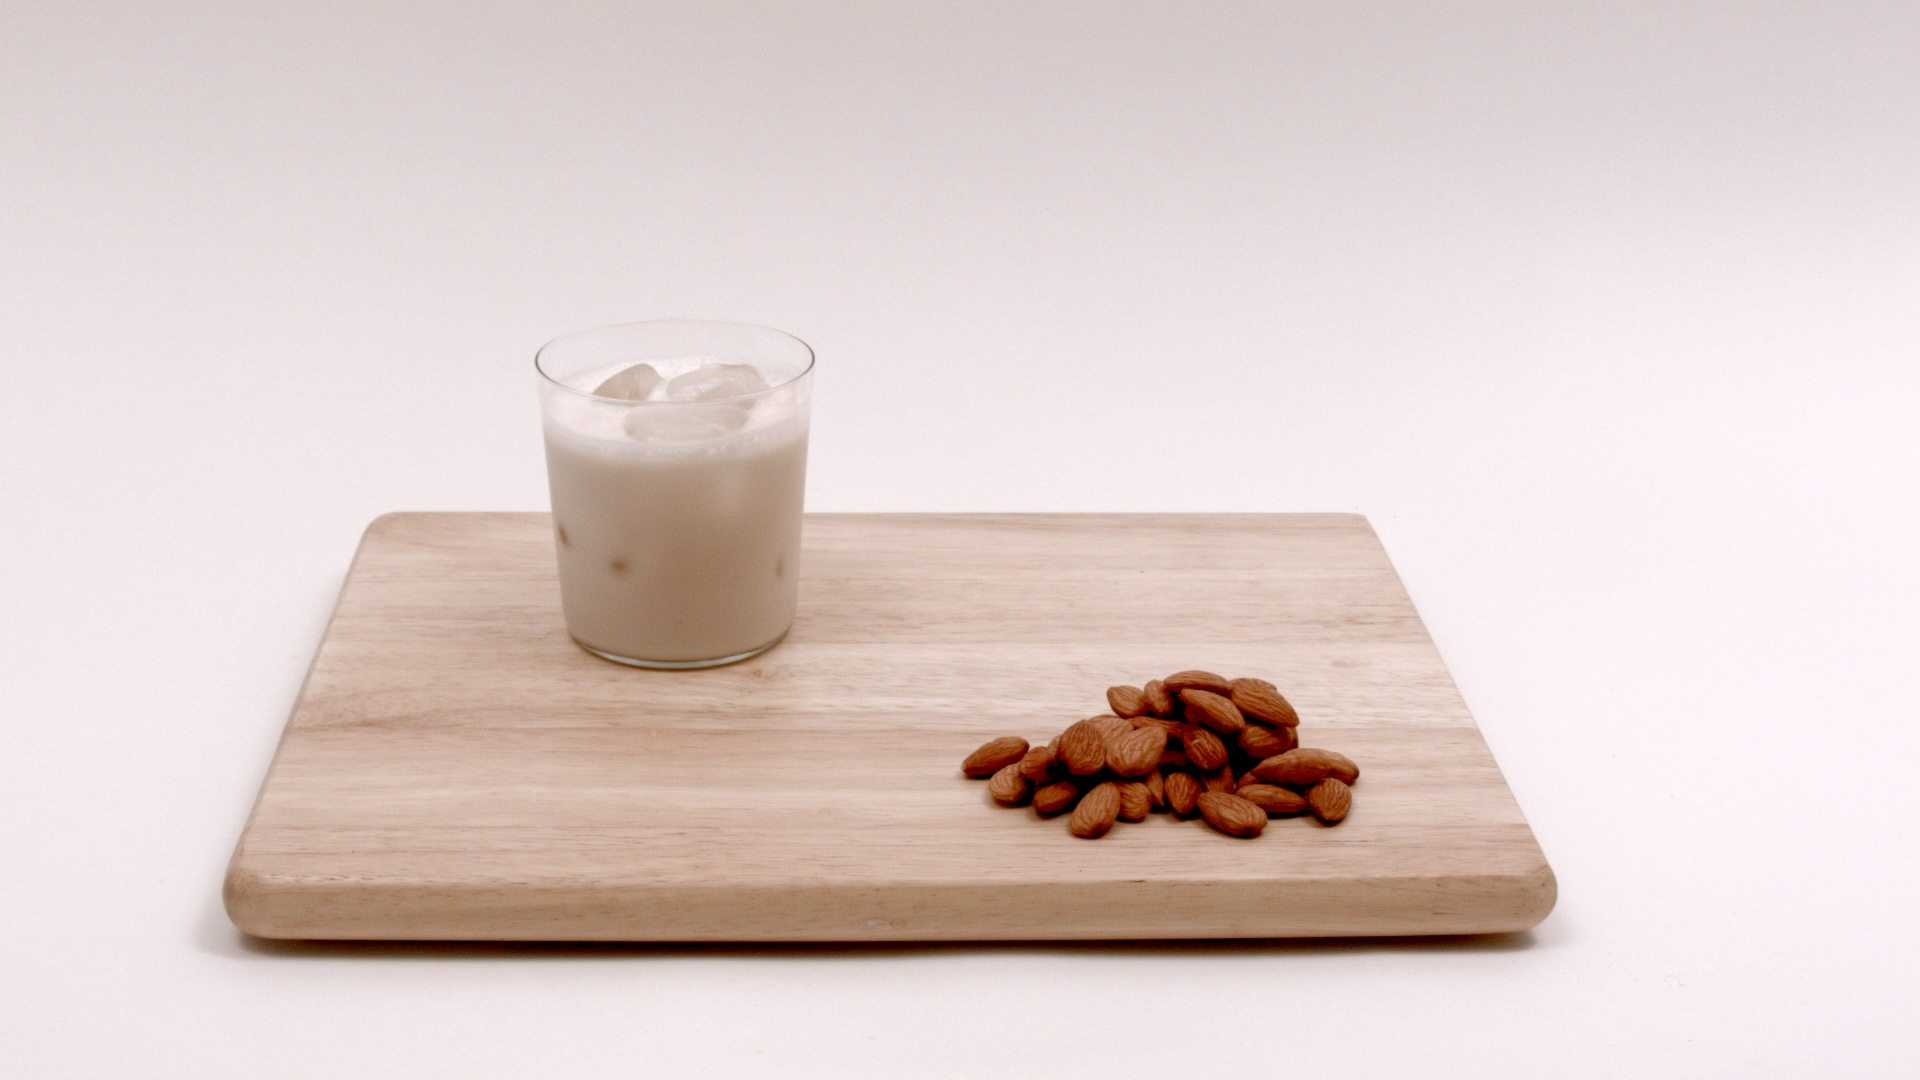 How to Make Healthy Homemade Almond Milk